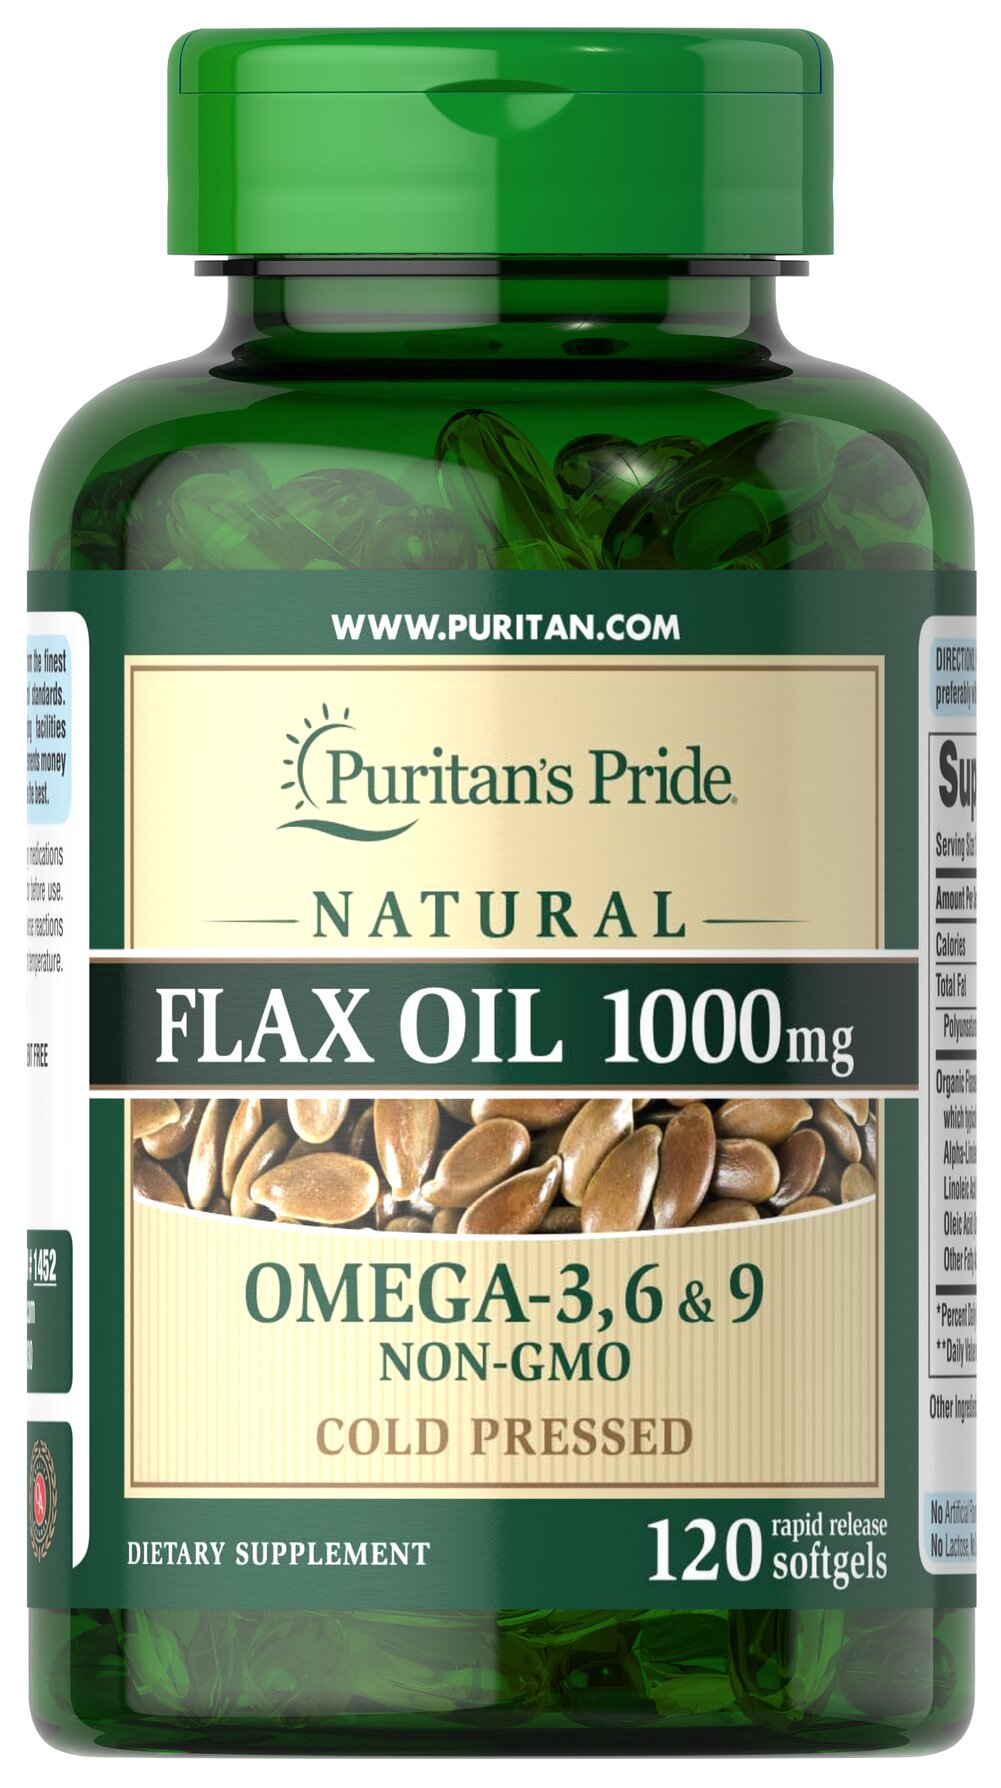 Natural Flax Oil 1000 mg  120 Softgels 1000 mg $12.99